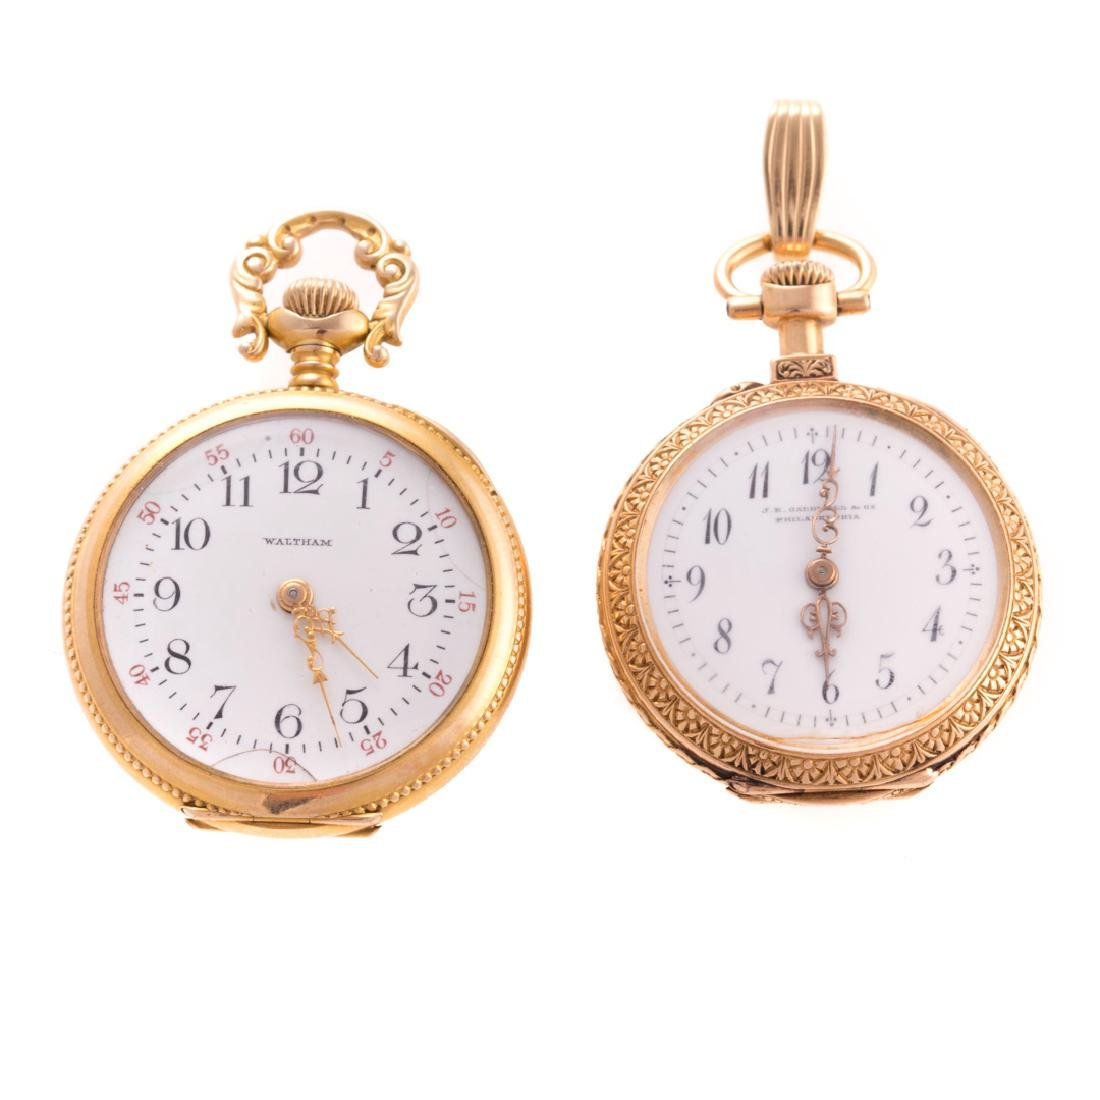 A Pair of Lady's Pocket Watches in Gold